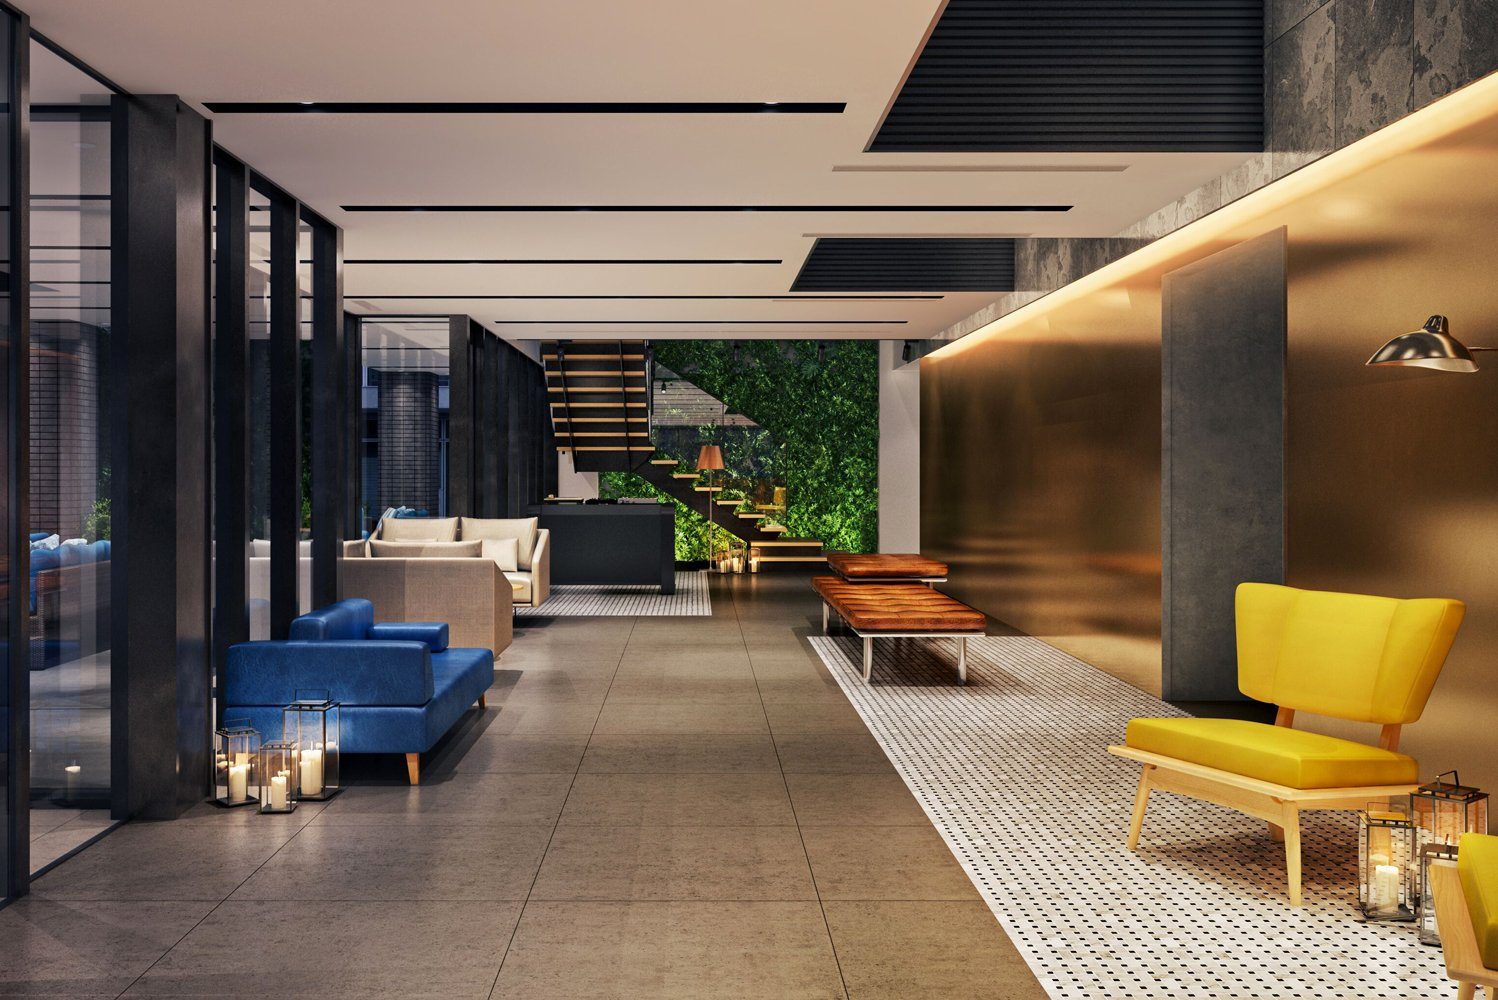 The lobby of The Lively Honmachi Osaka will double as a lounge with sofas, a billiard table, board games, and a projector area for watching films.